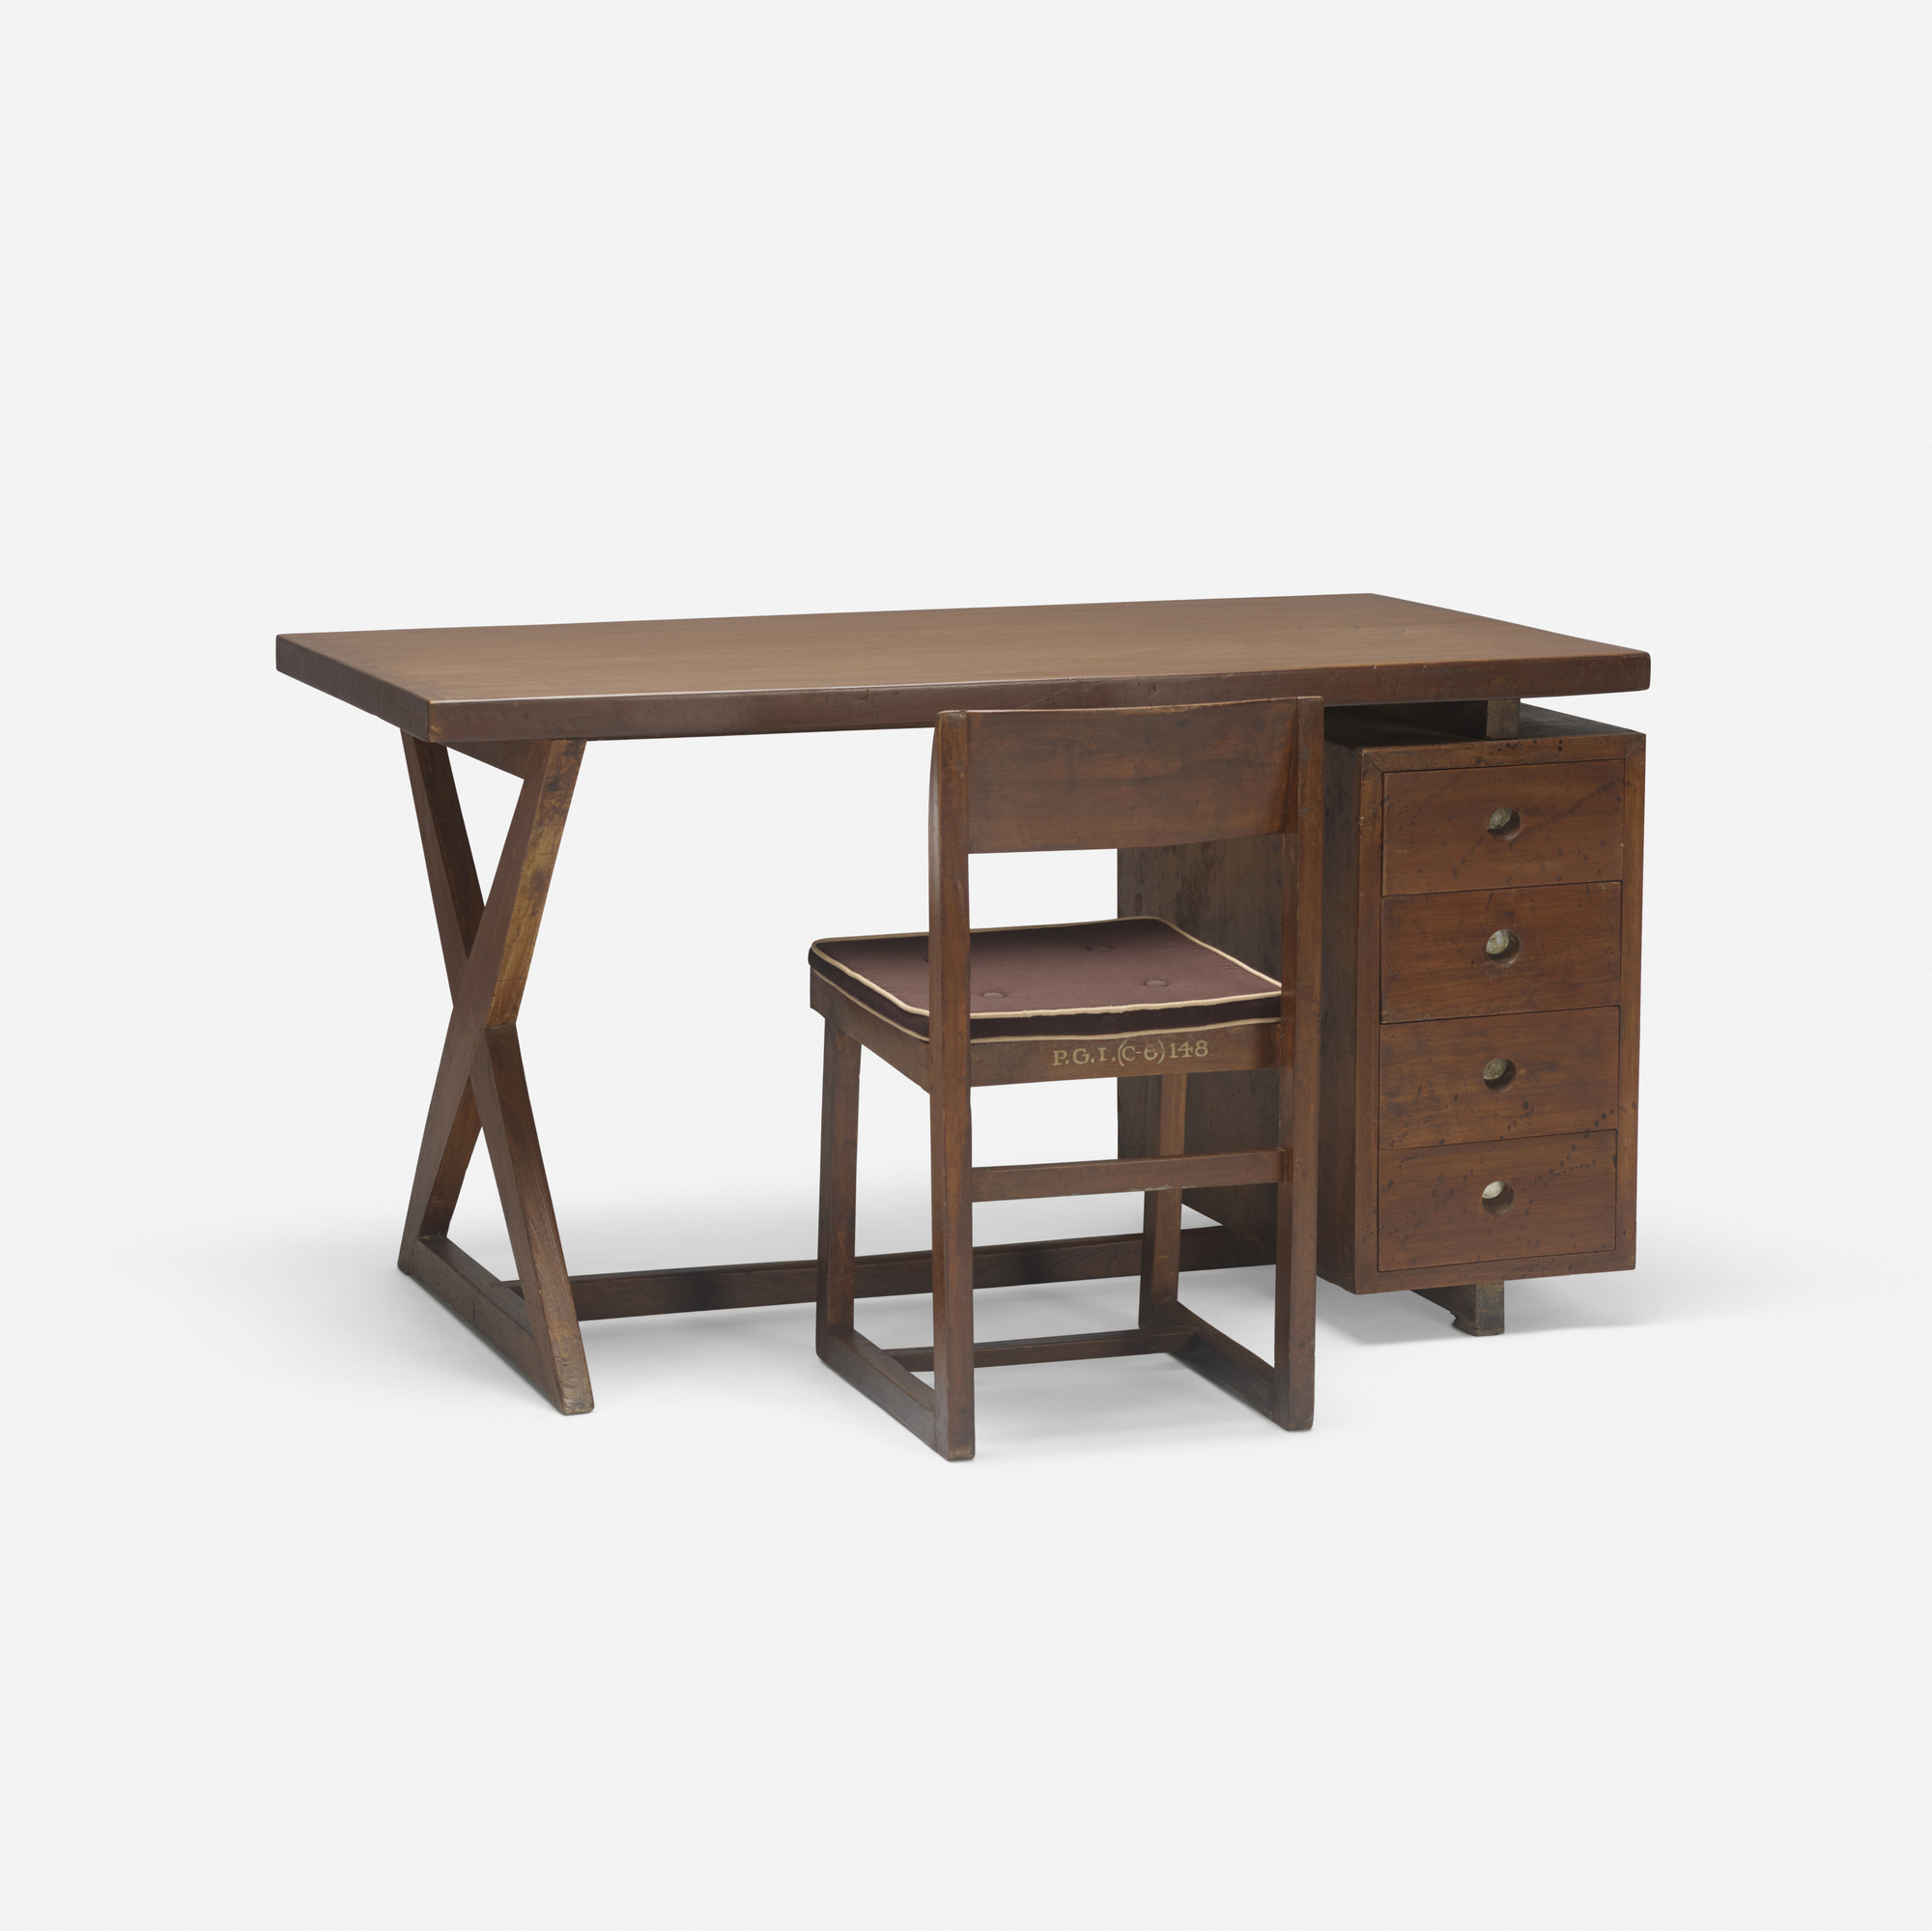 125: Pierre Jeanneret / desk with chair from the Administrative Buildings, Chandigarh (1 of 3)